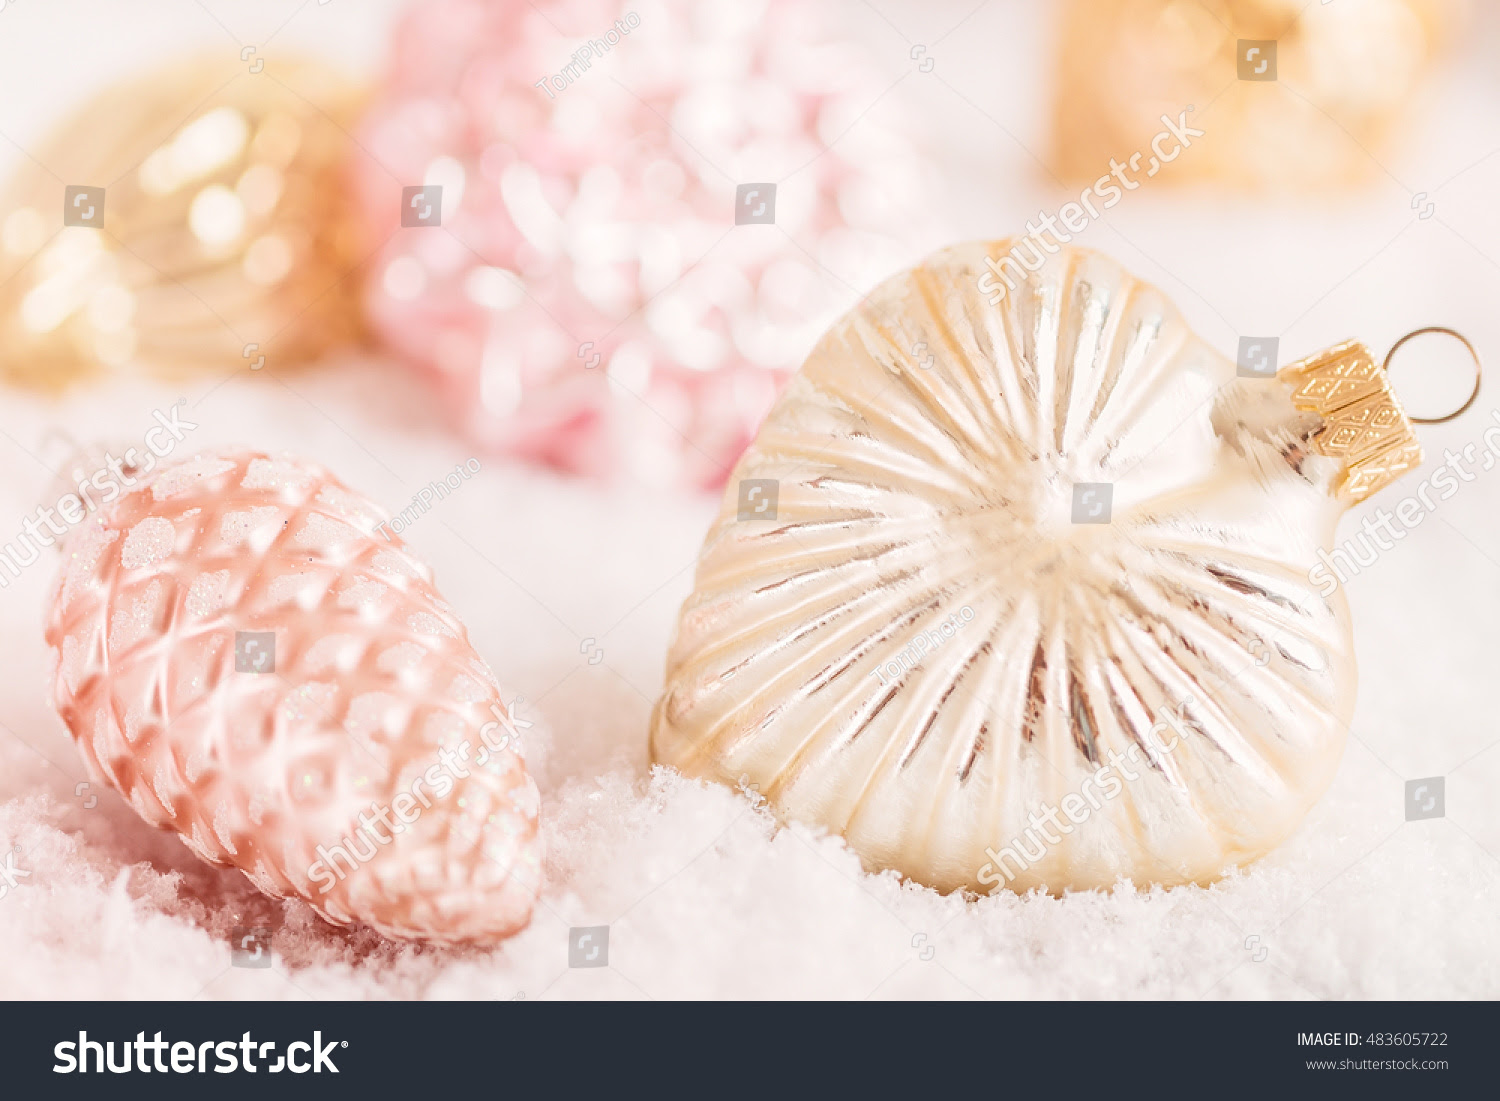 http://www.shutterstock.com/pic-483605722/stock-photo-closeup-antique-style-glass-christmas-decorations-on-snow-background-shallow-focus.html